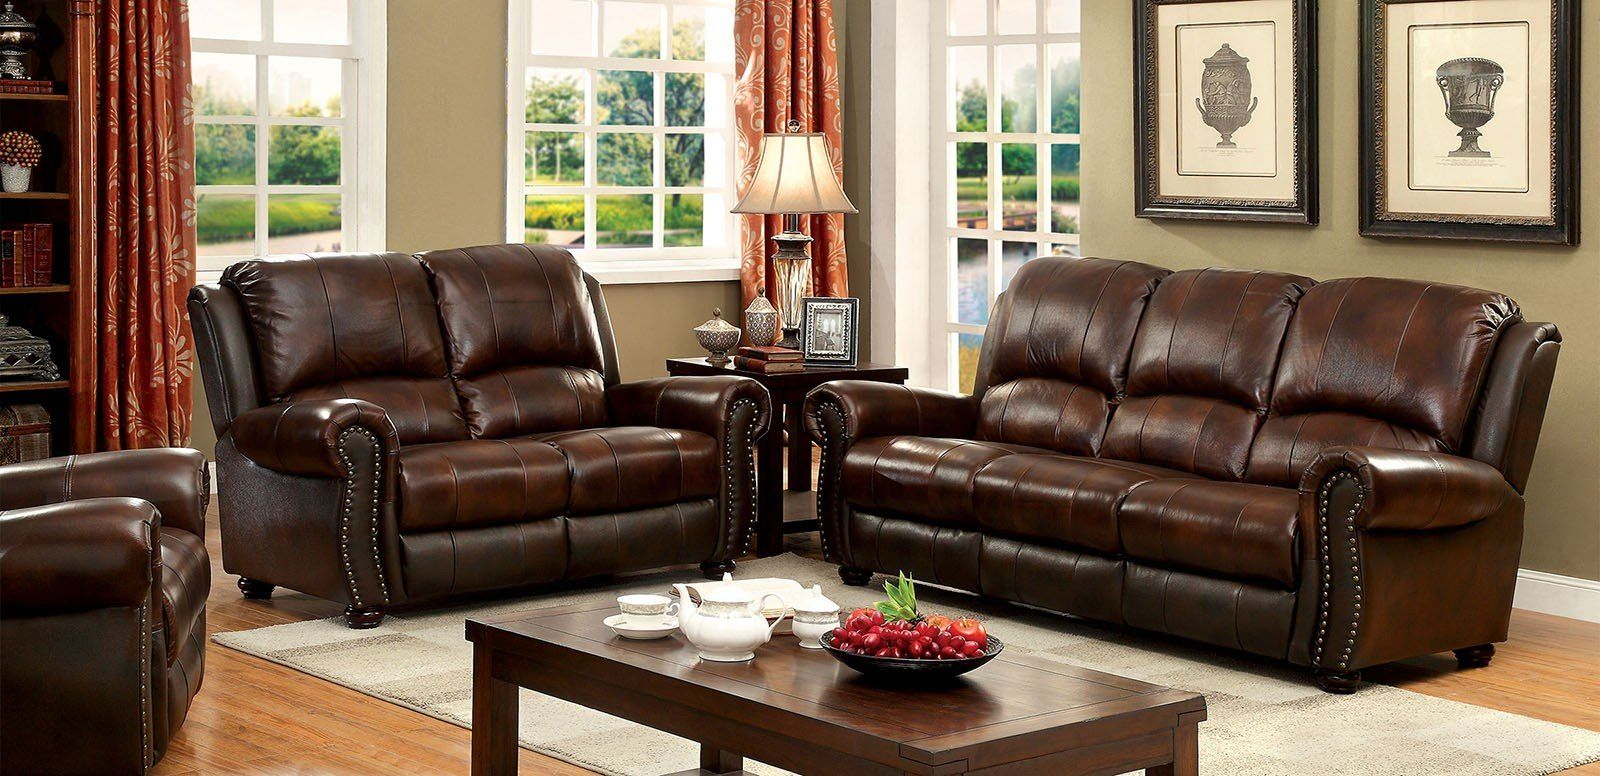 Transitional Style Living Room Furniture Turton Cm6191 Sf Transitional Brown Top Grain Leather Match Sofa